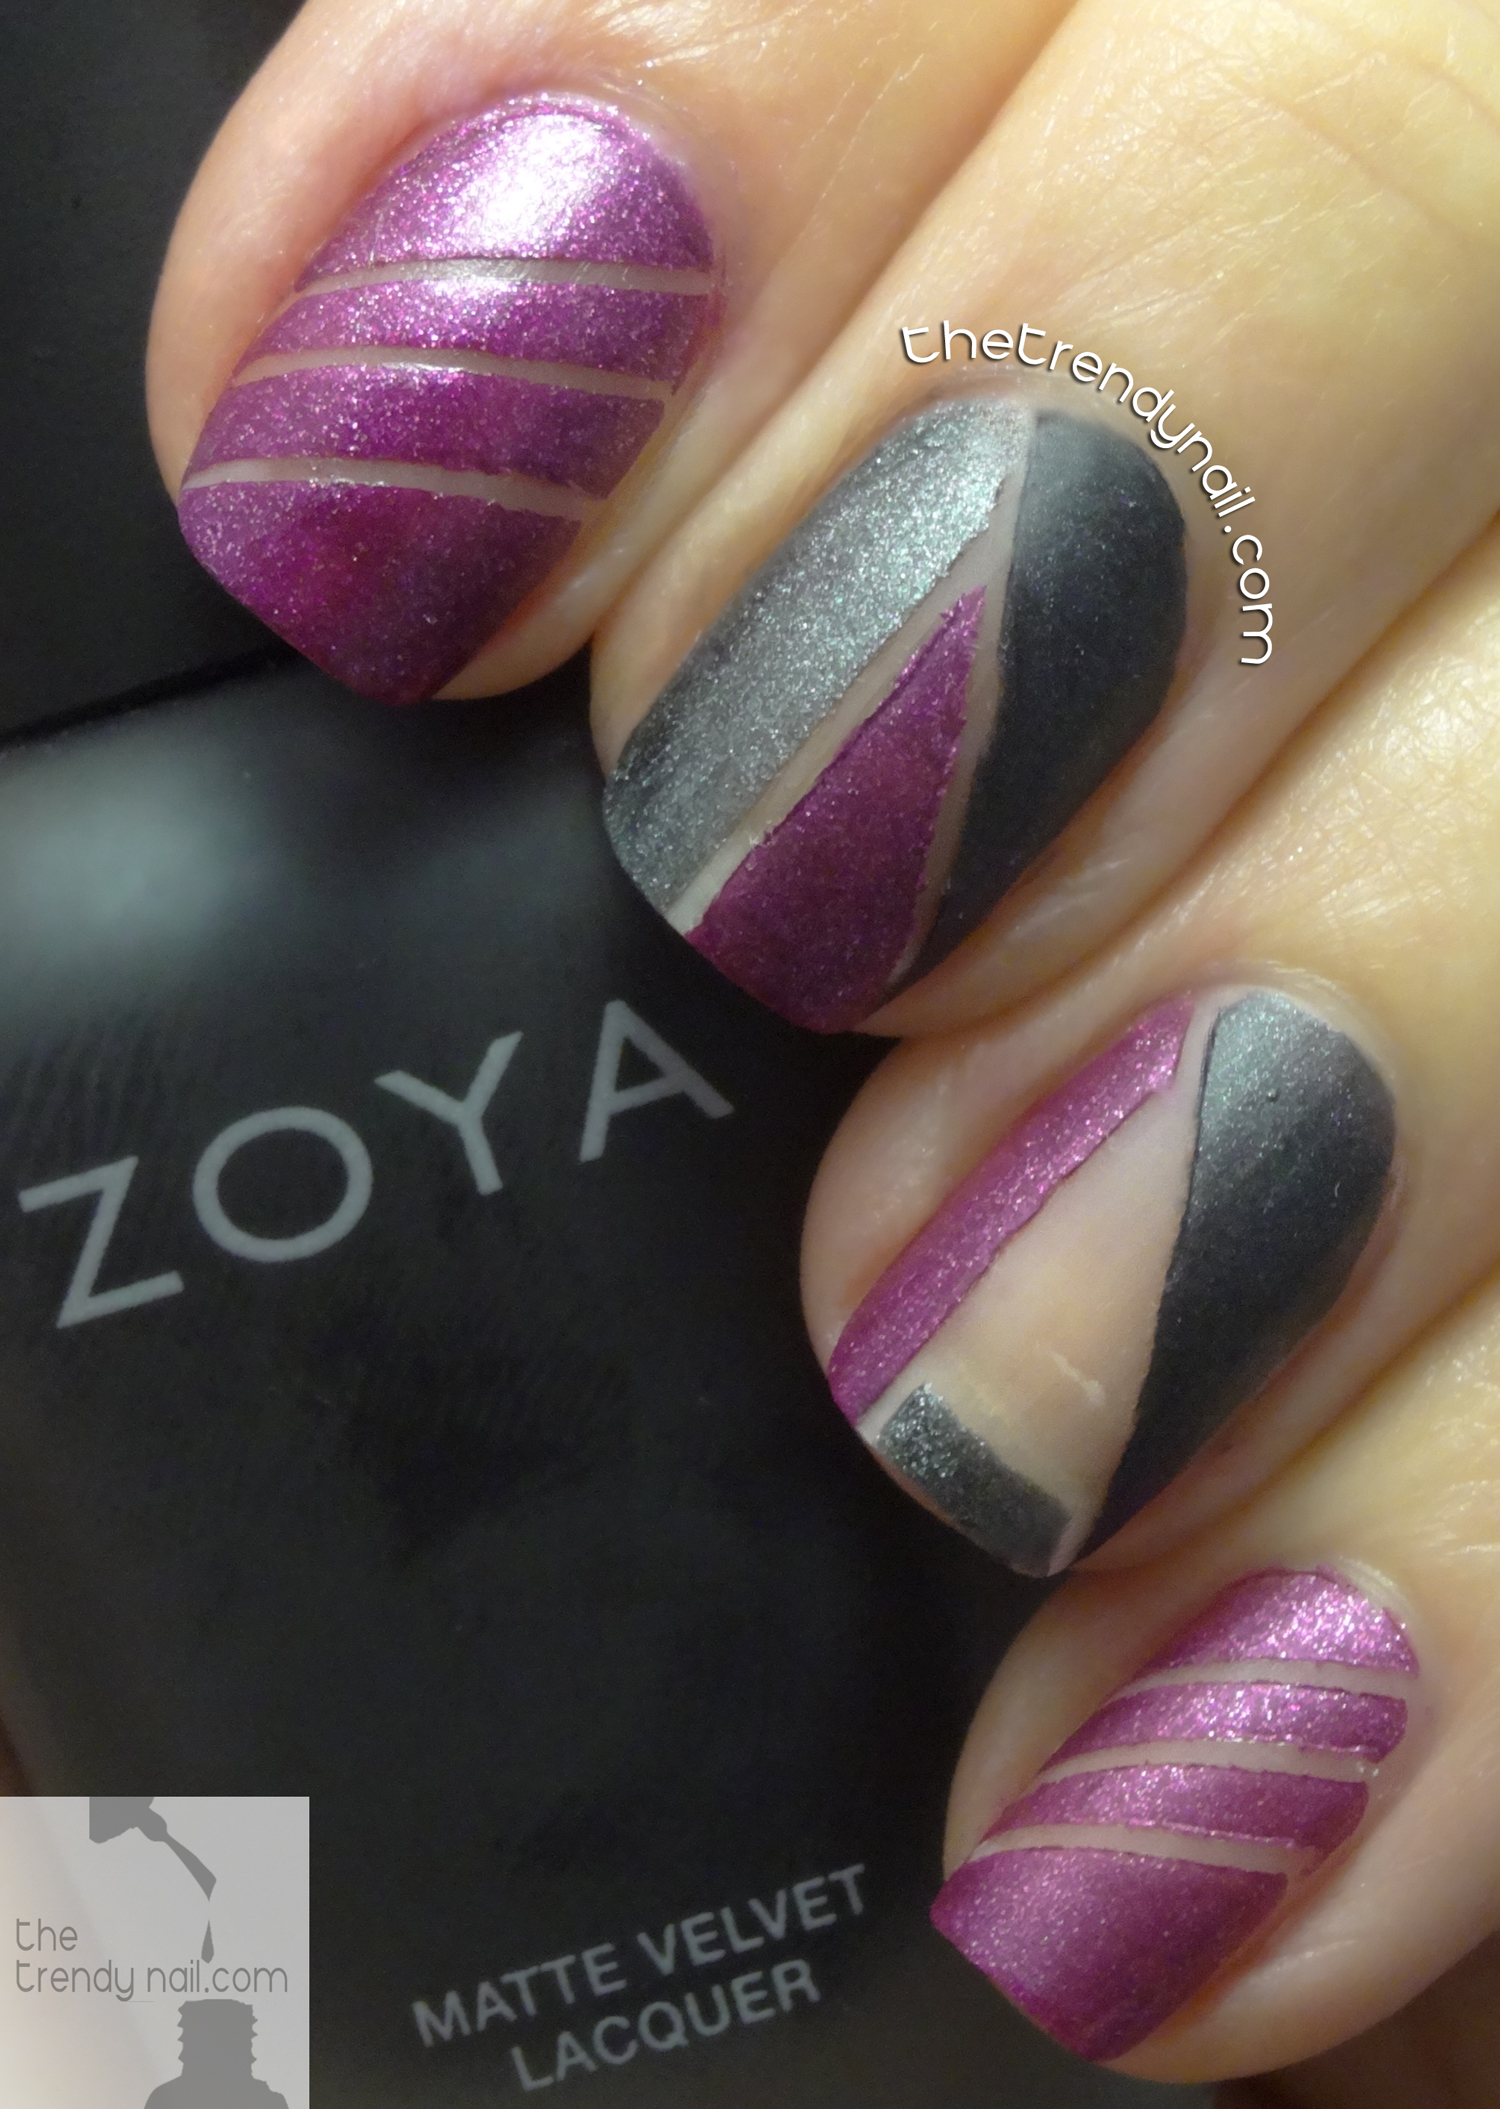 Negative Space Nail Art with Zoya Matte Velvet Nail Polish